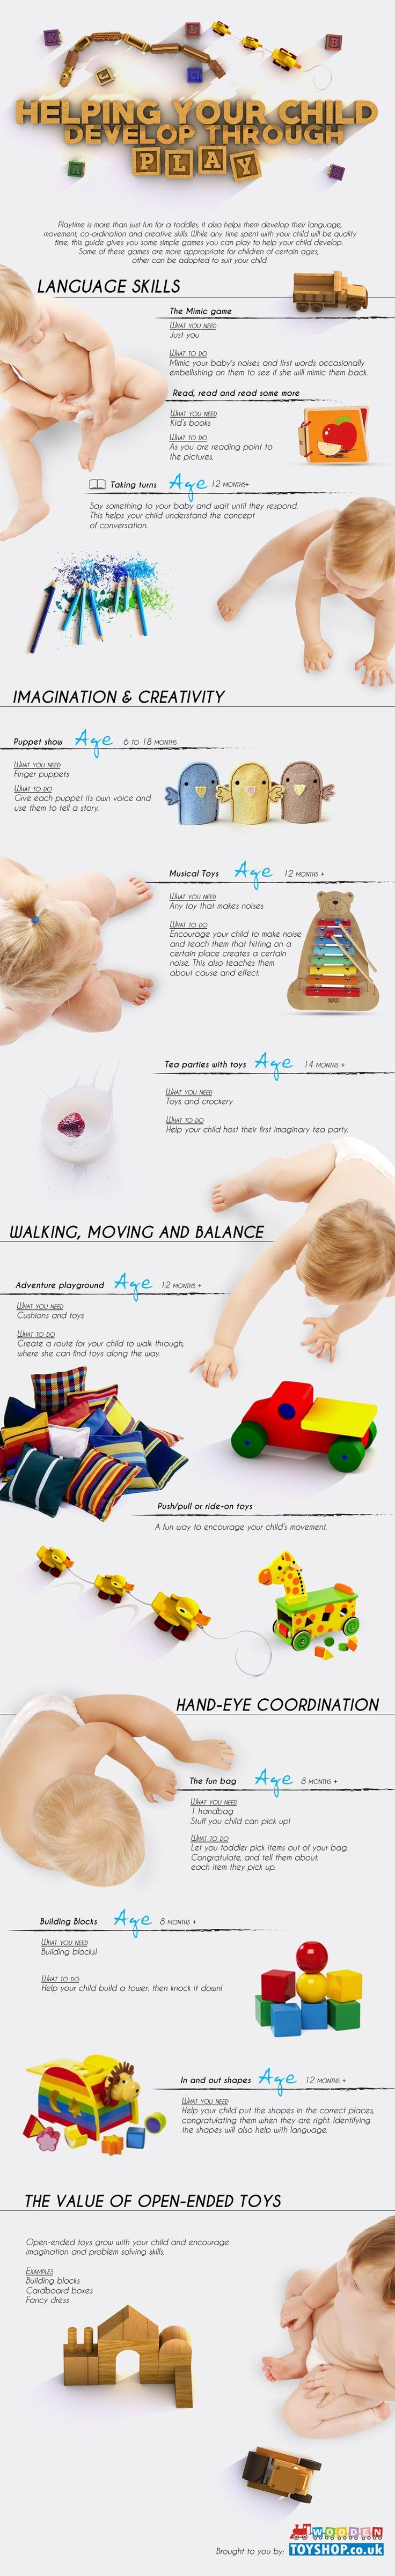 Best 25 child development activities ideas on pinterest child development chart toddler Fine motor development toys